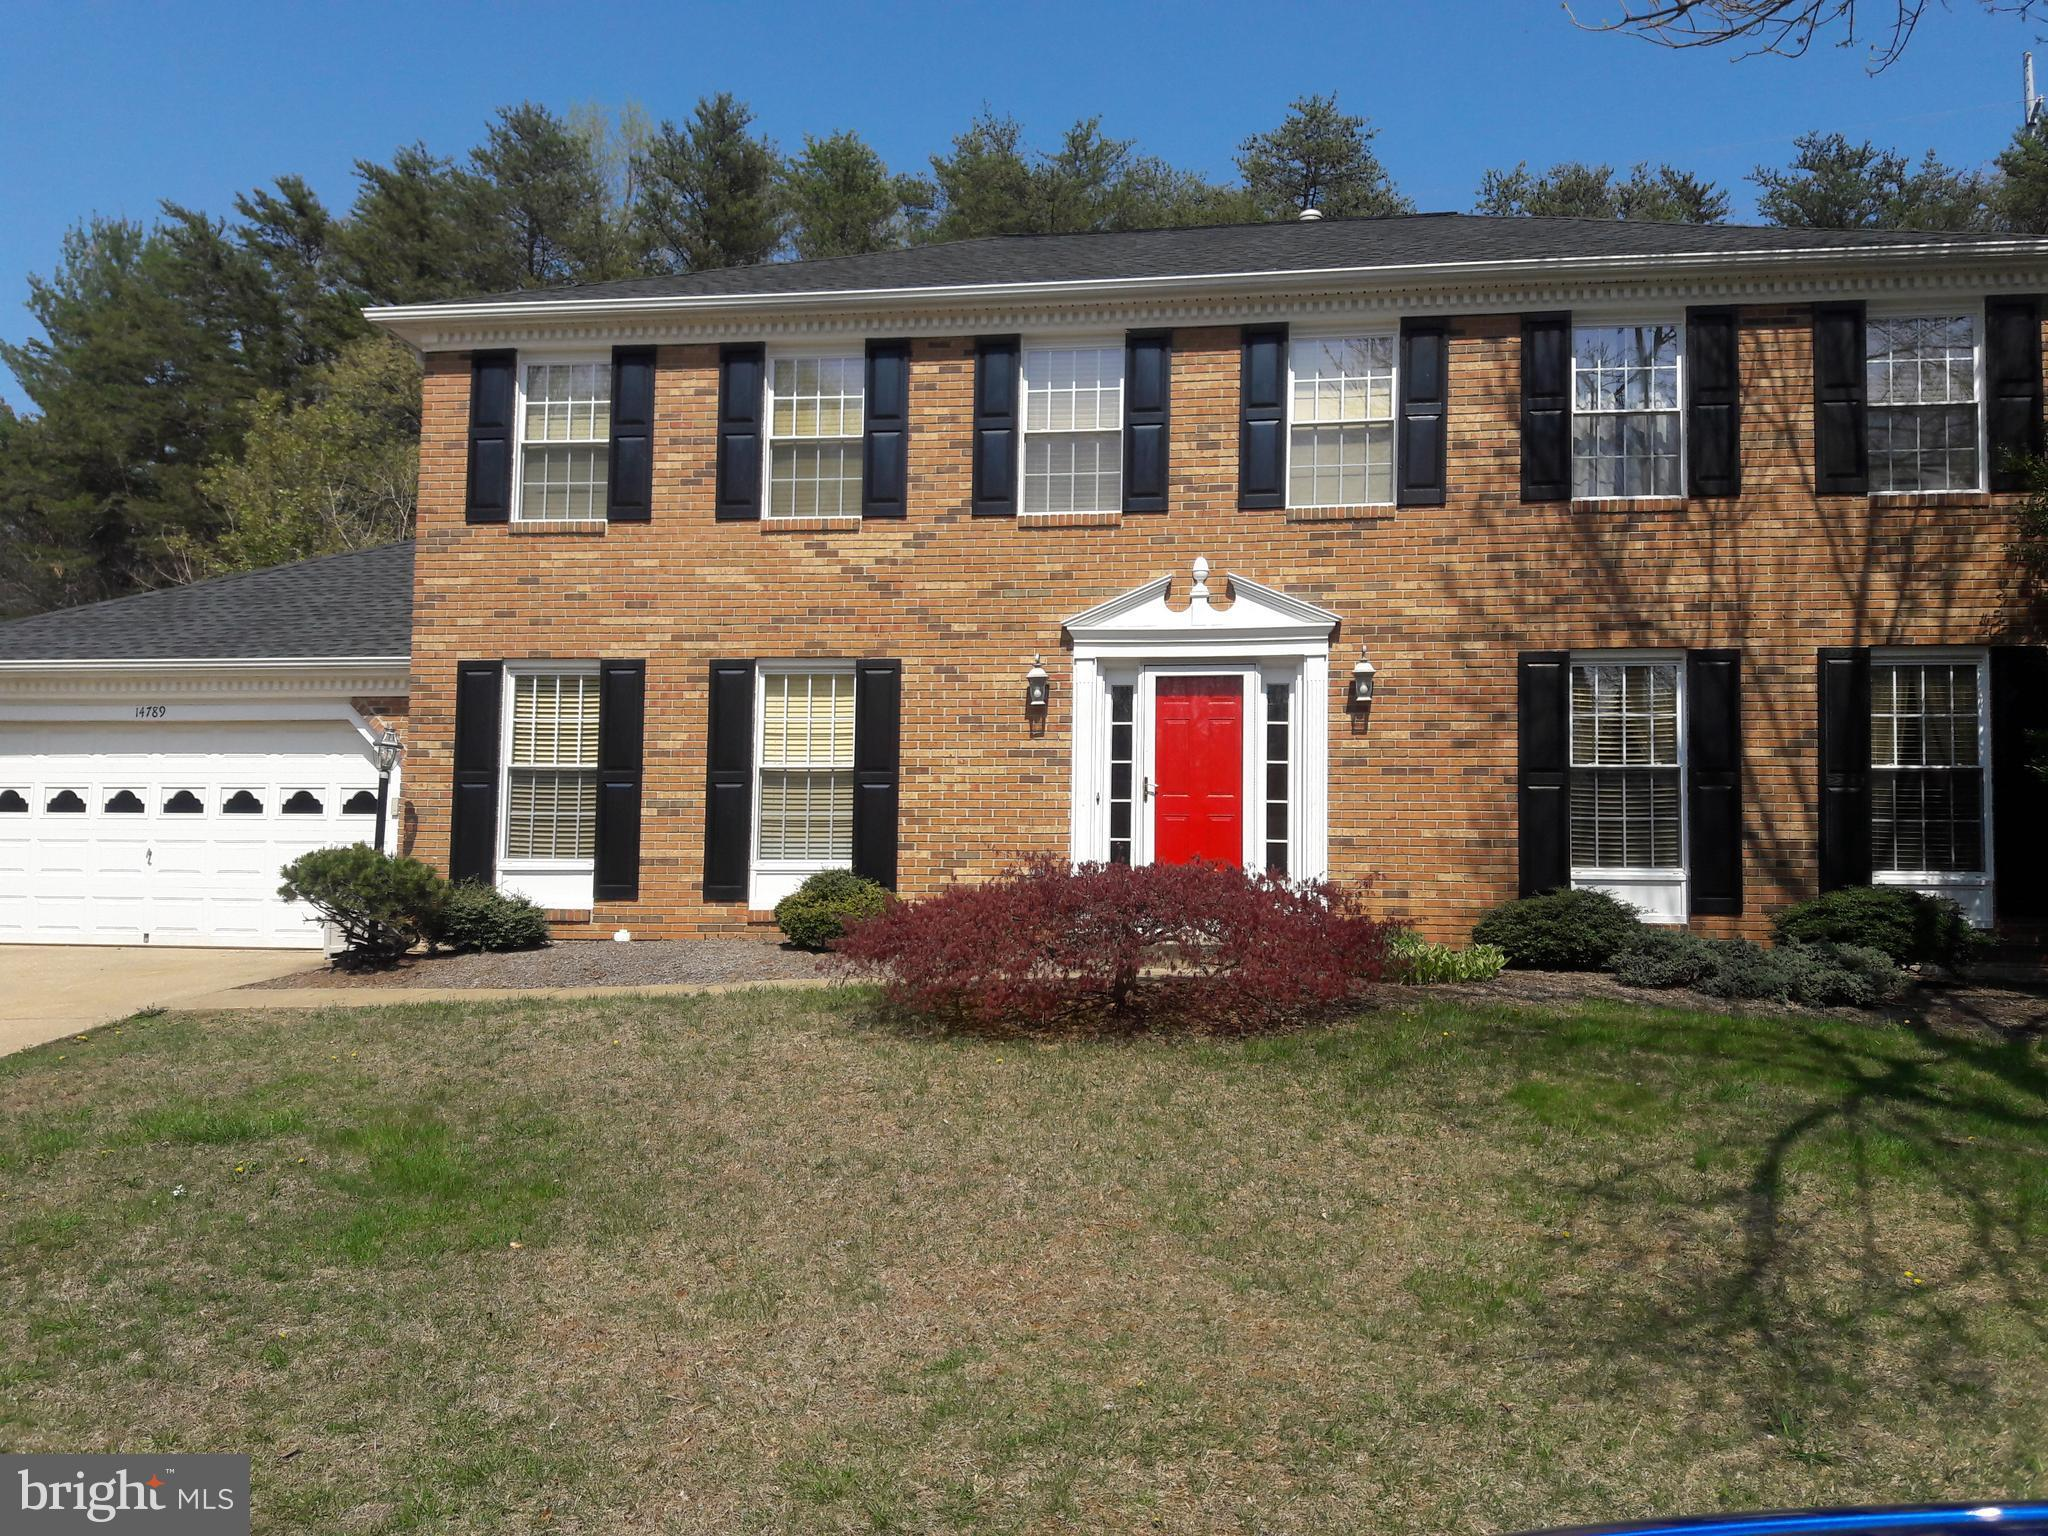 Brick front colonial on quiet street. Privacy fence, flat yard & screened porch backing to trees. Hardwood main level w/open-concept kitchen/eat-in/family rm w/gas fireplace. Granite/stainless & other updates. Five beds up, 4 piece master bath. Basement has full bath, bonus room & storage. 2-car garage w/many shelves & walk-up attic. Roof & dryer 1yo, furnace 2yo, washer 4yo. Well cared-for home!!